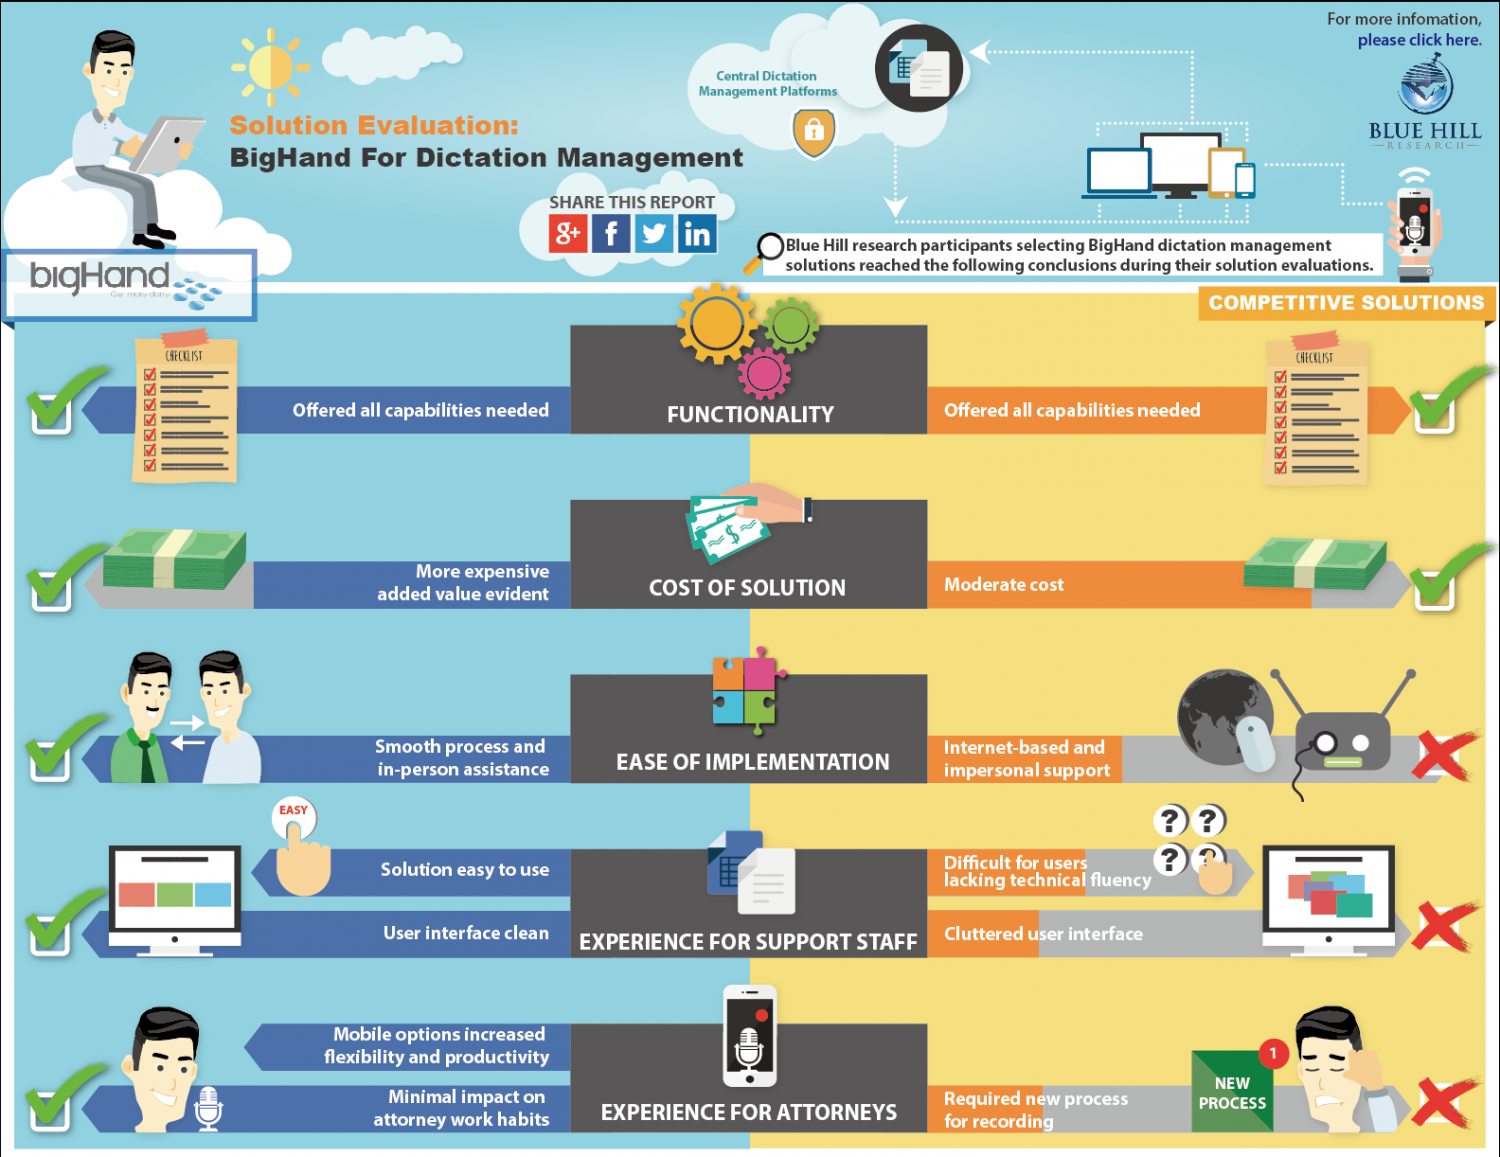 Solution Evaluation: BigHand For Dictation Management Infographic